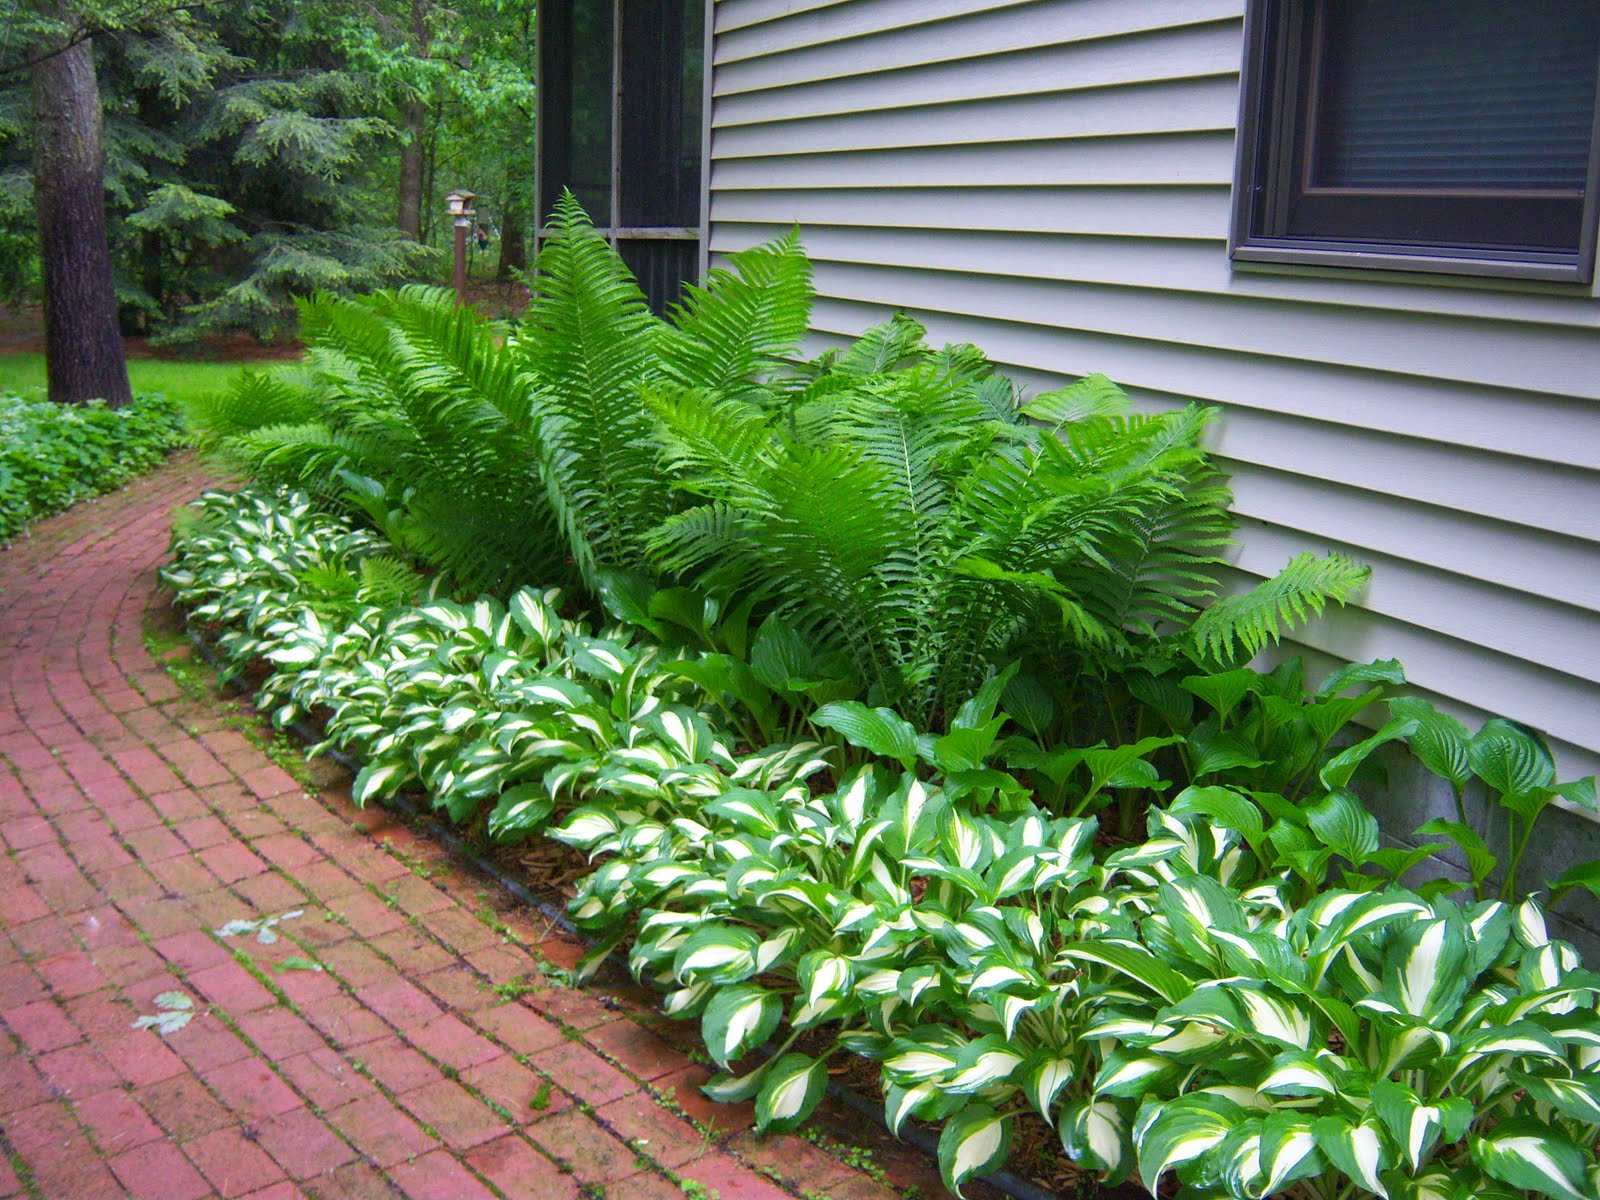 Landscaping With Ferns : Ferns and hostas want for my garden